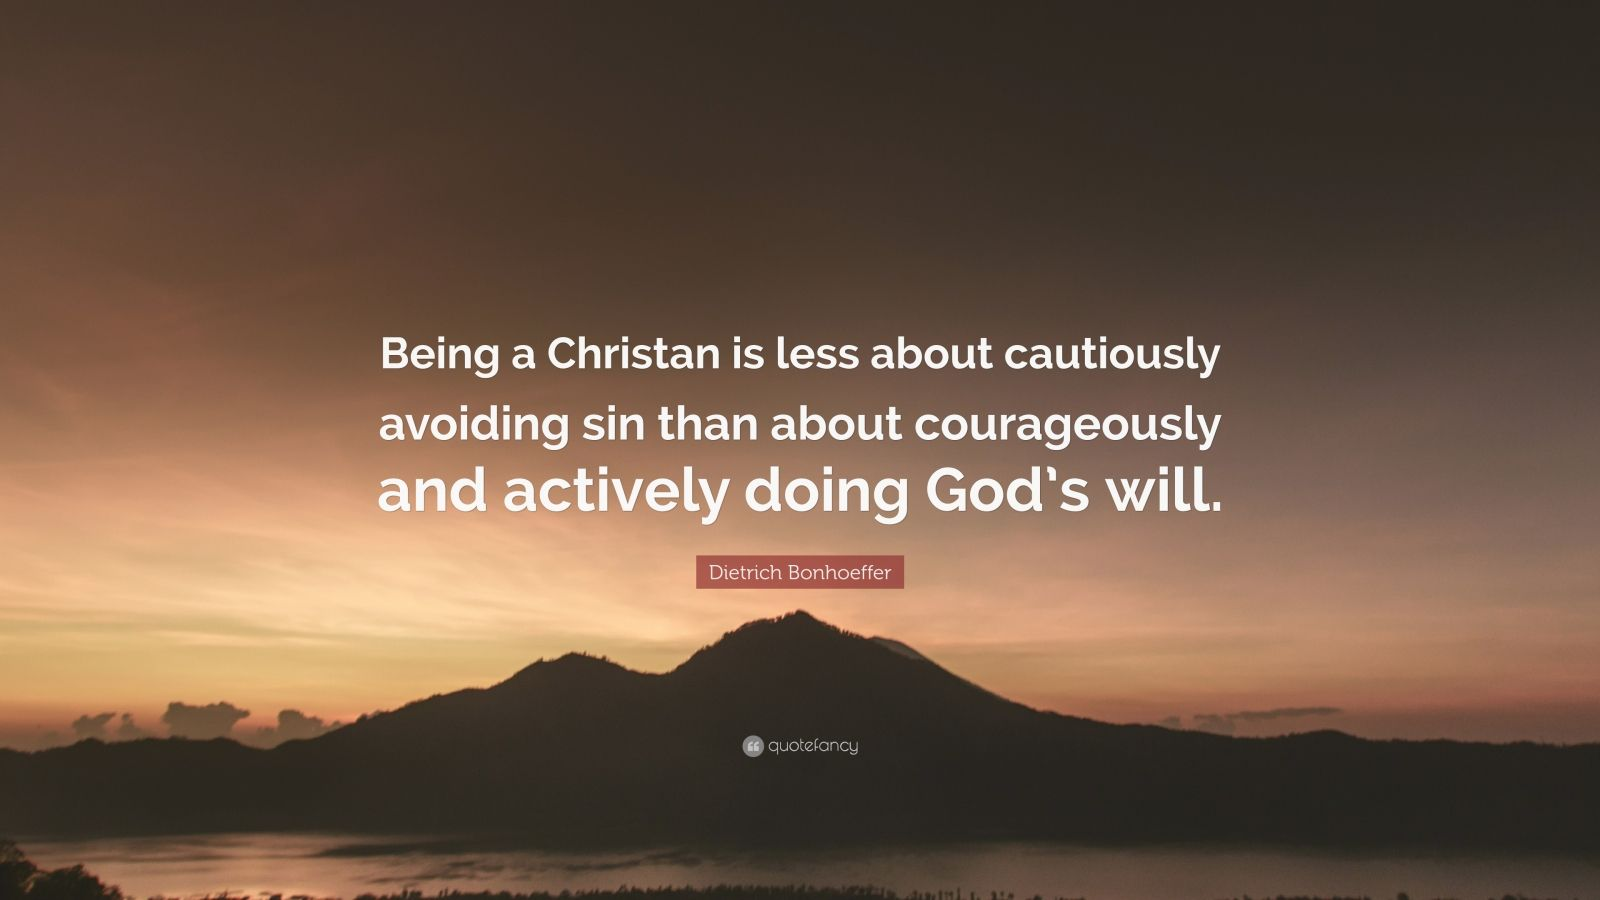 """Dietrich Bonhoeffer Quote: """"Being a Christan is less about cautiously avoiding sin than about courageously and actively doing God's will."""""""